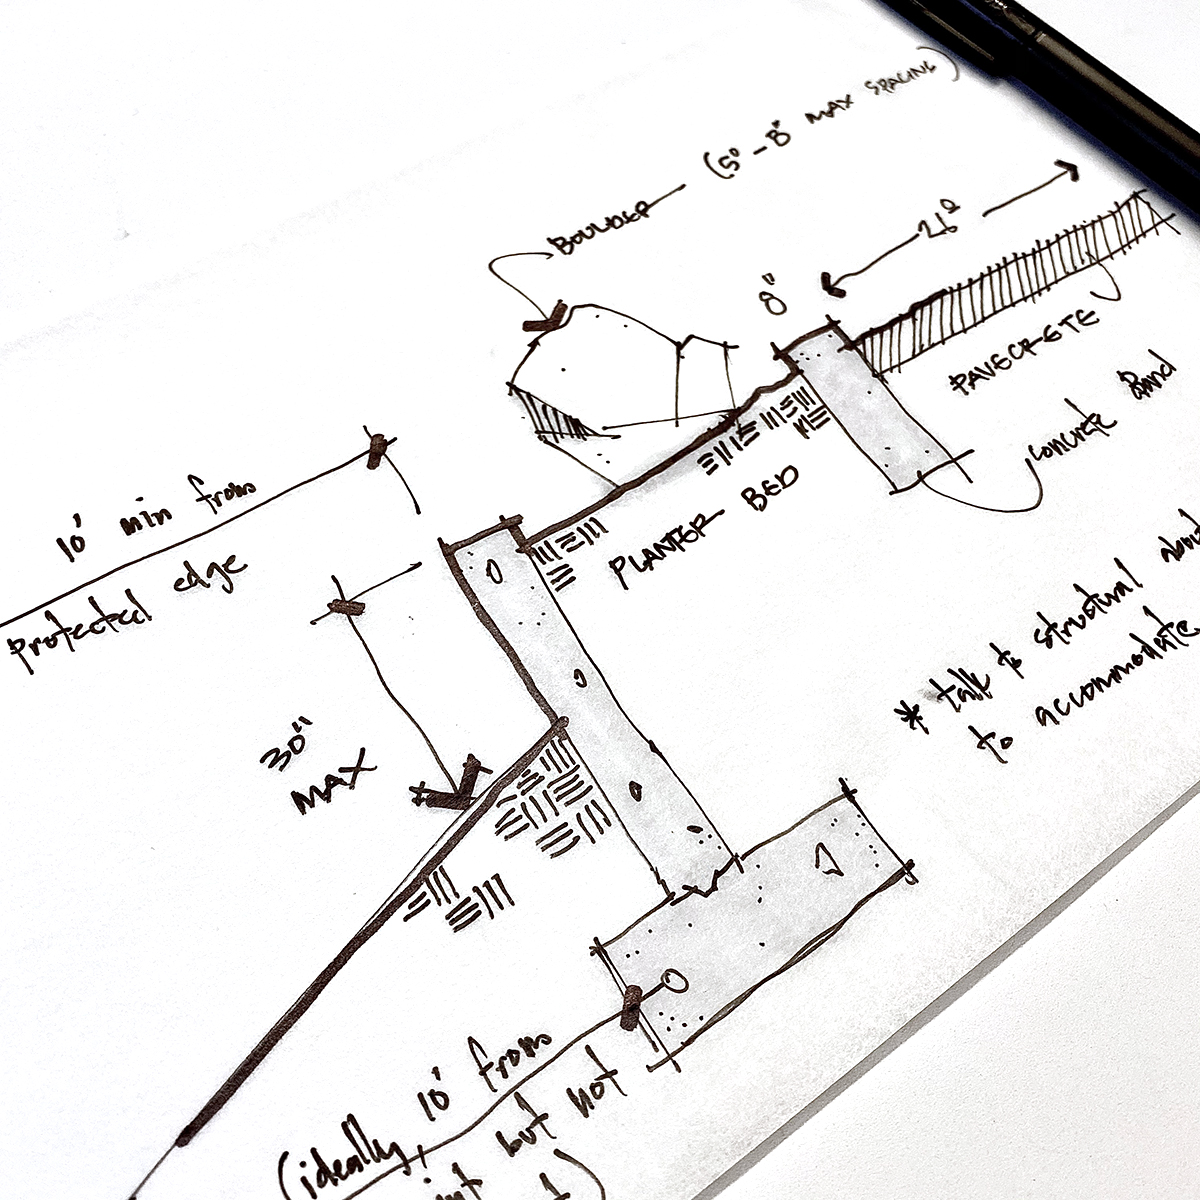 technical design sketch for a landscape retaining wall